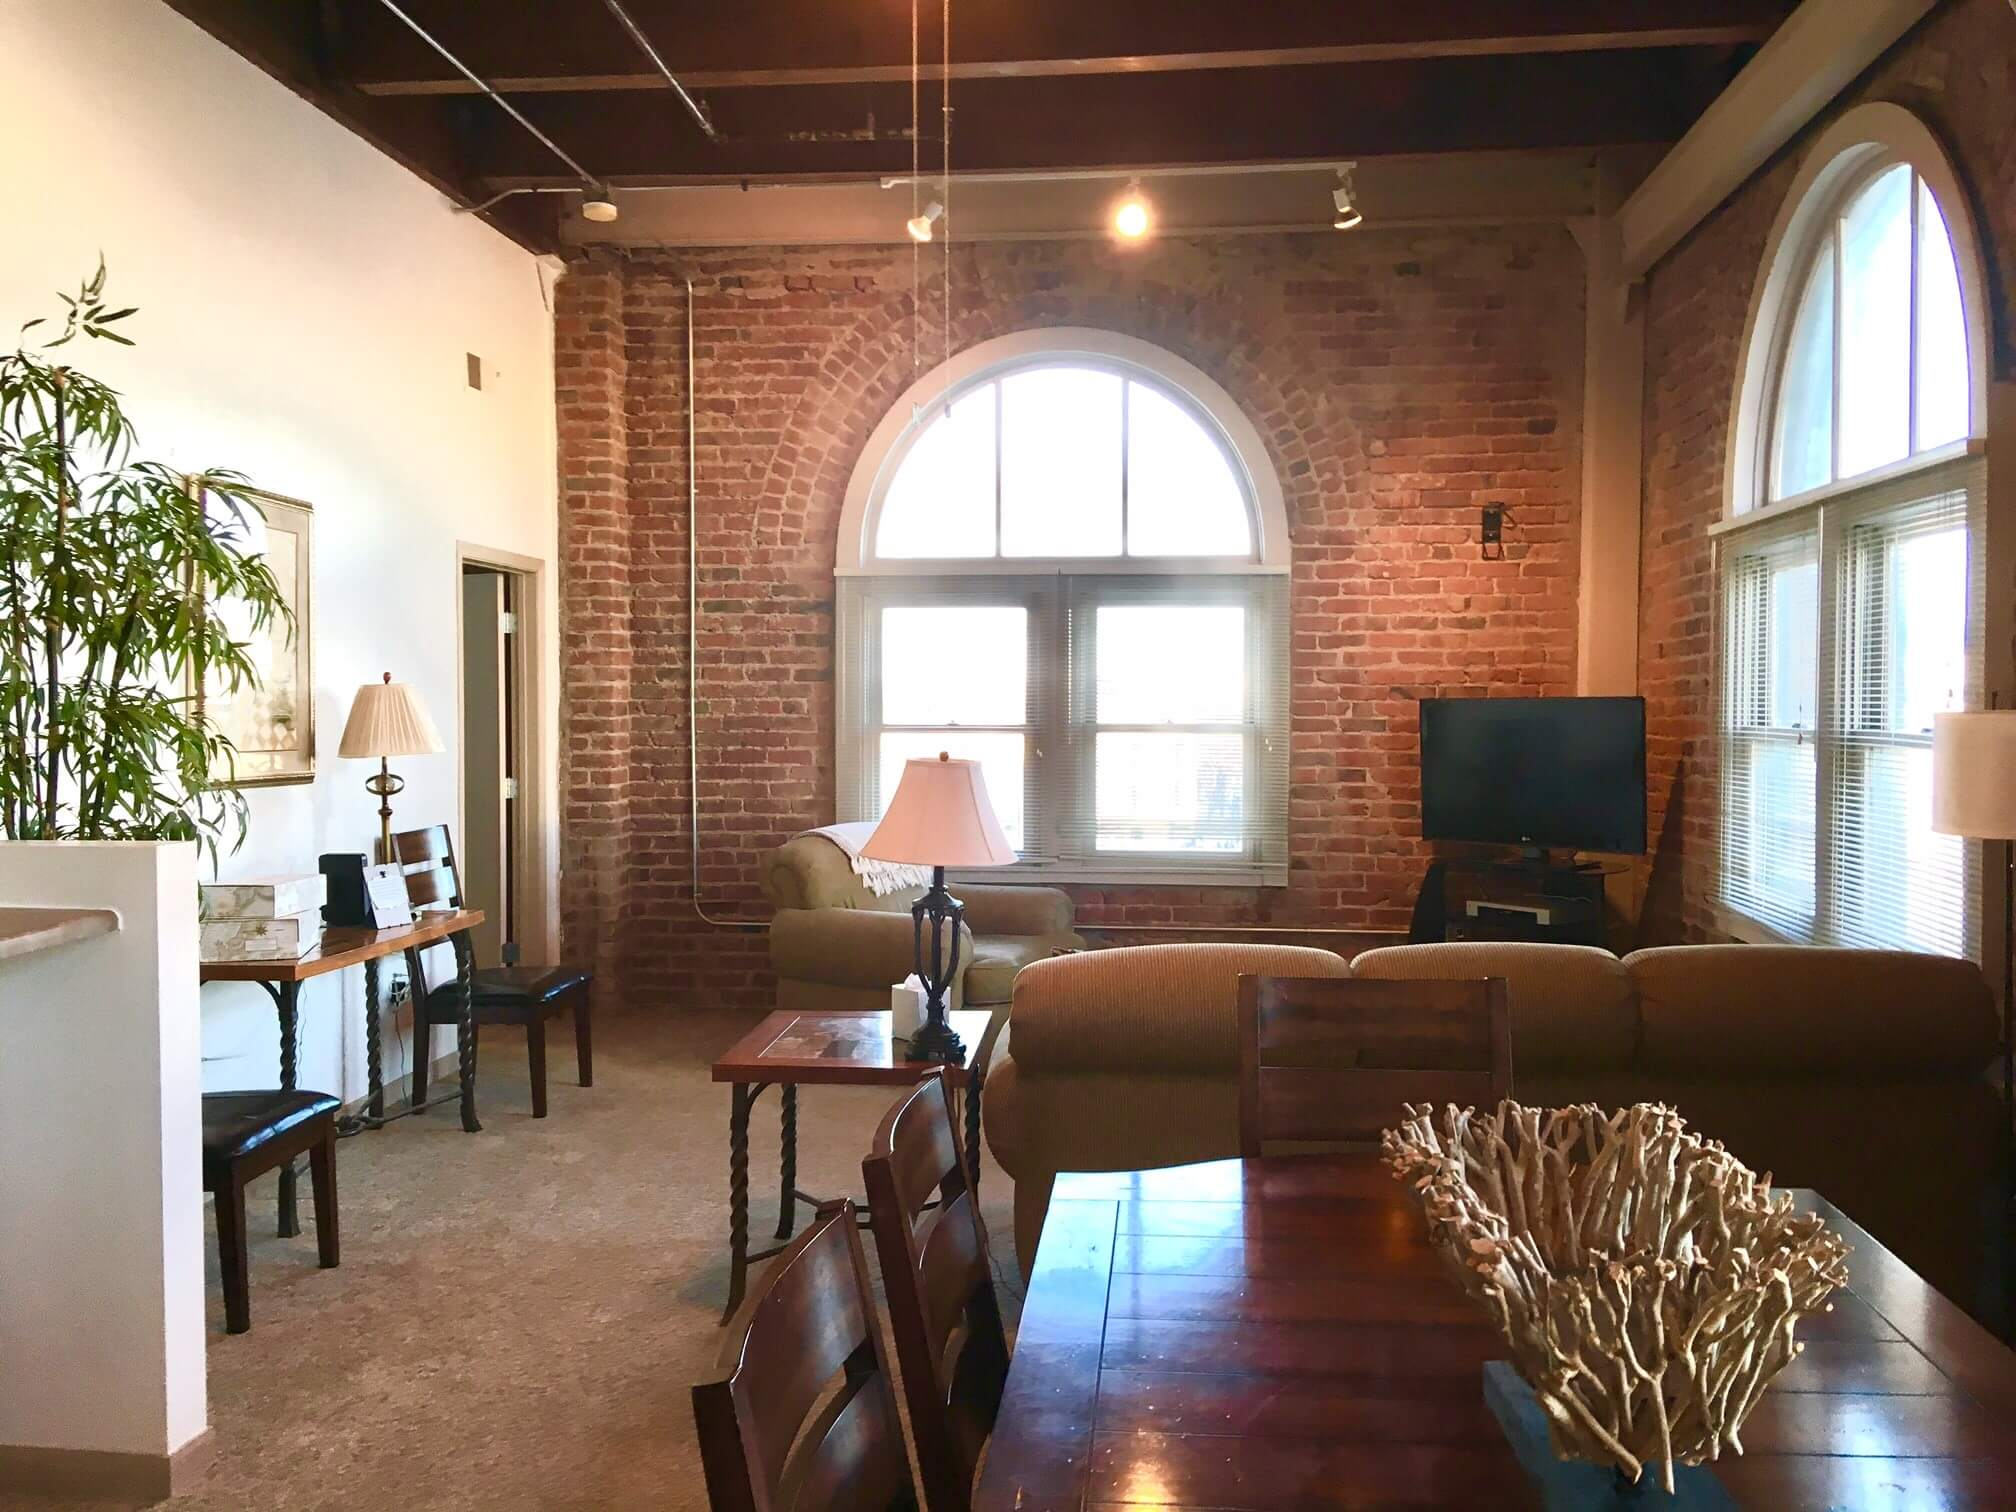 old-market-lofts-interior-4 Loft Style Home Plans on